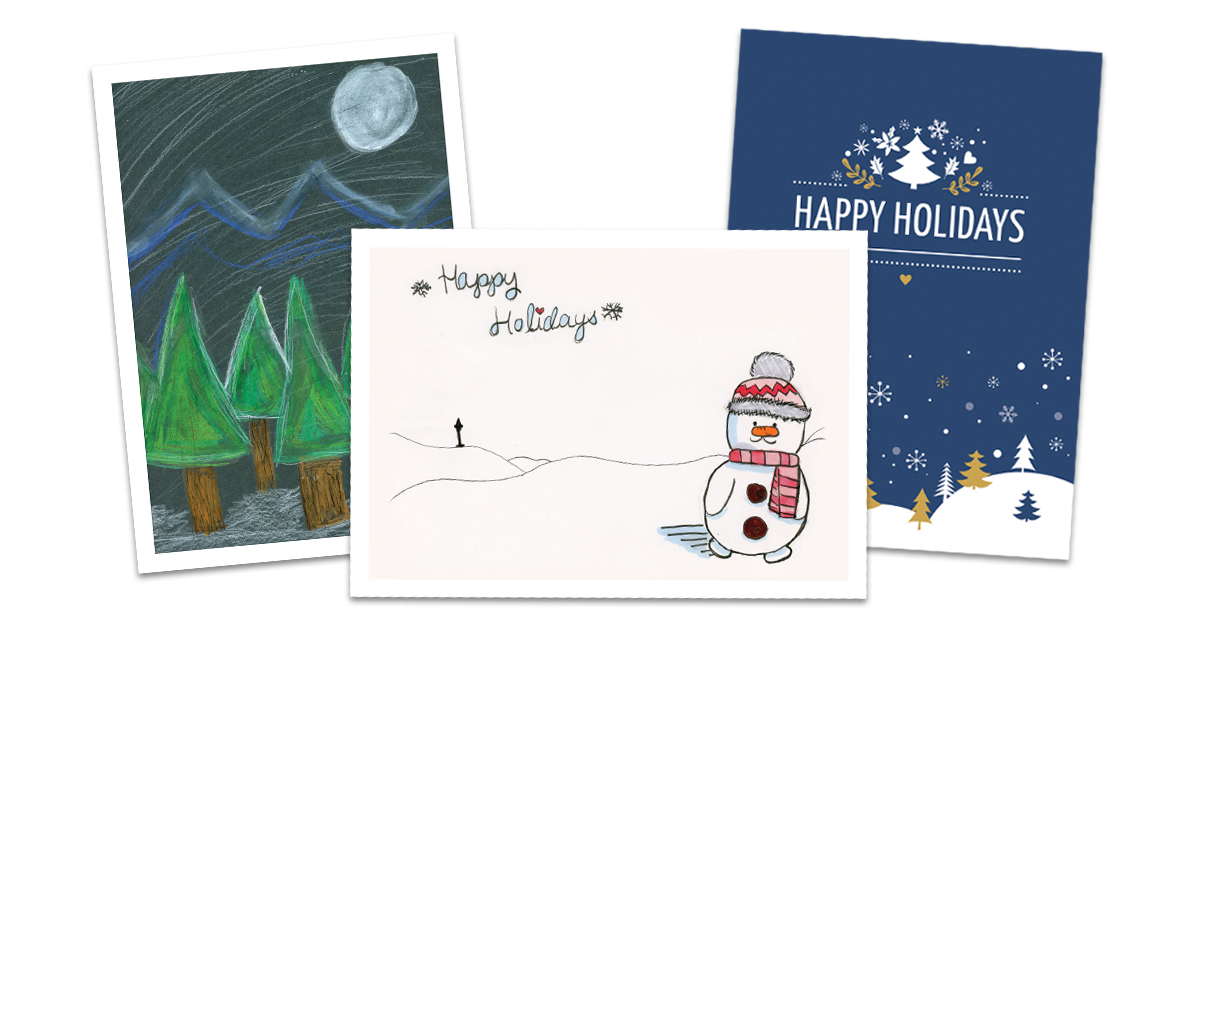 Three images of holiday cards